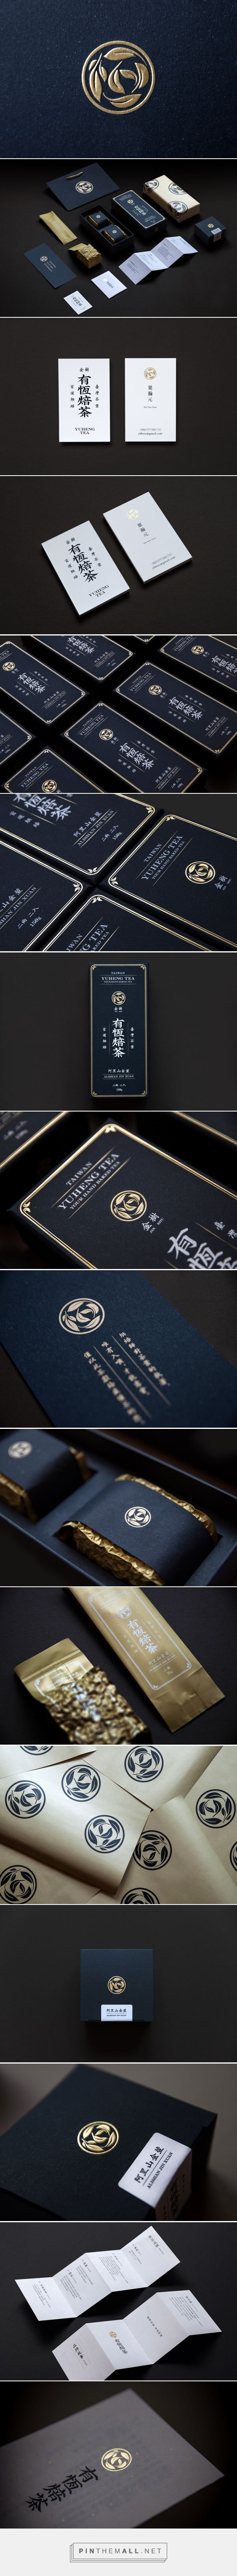 Yuheng Tea packaging design by OnionDesign (Taiwan) - http://www.packagingoftheworld.com/2016/07/yuheng-tea.html